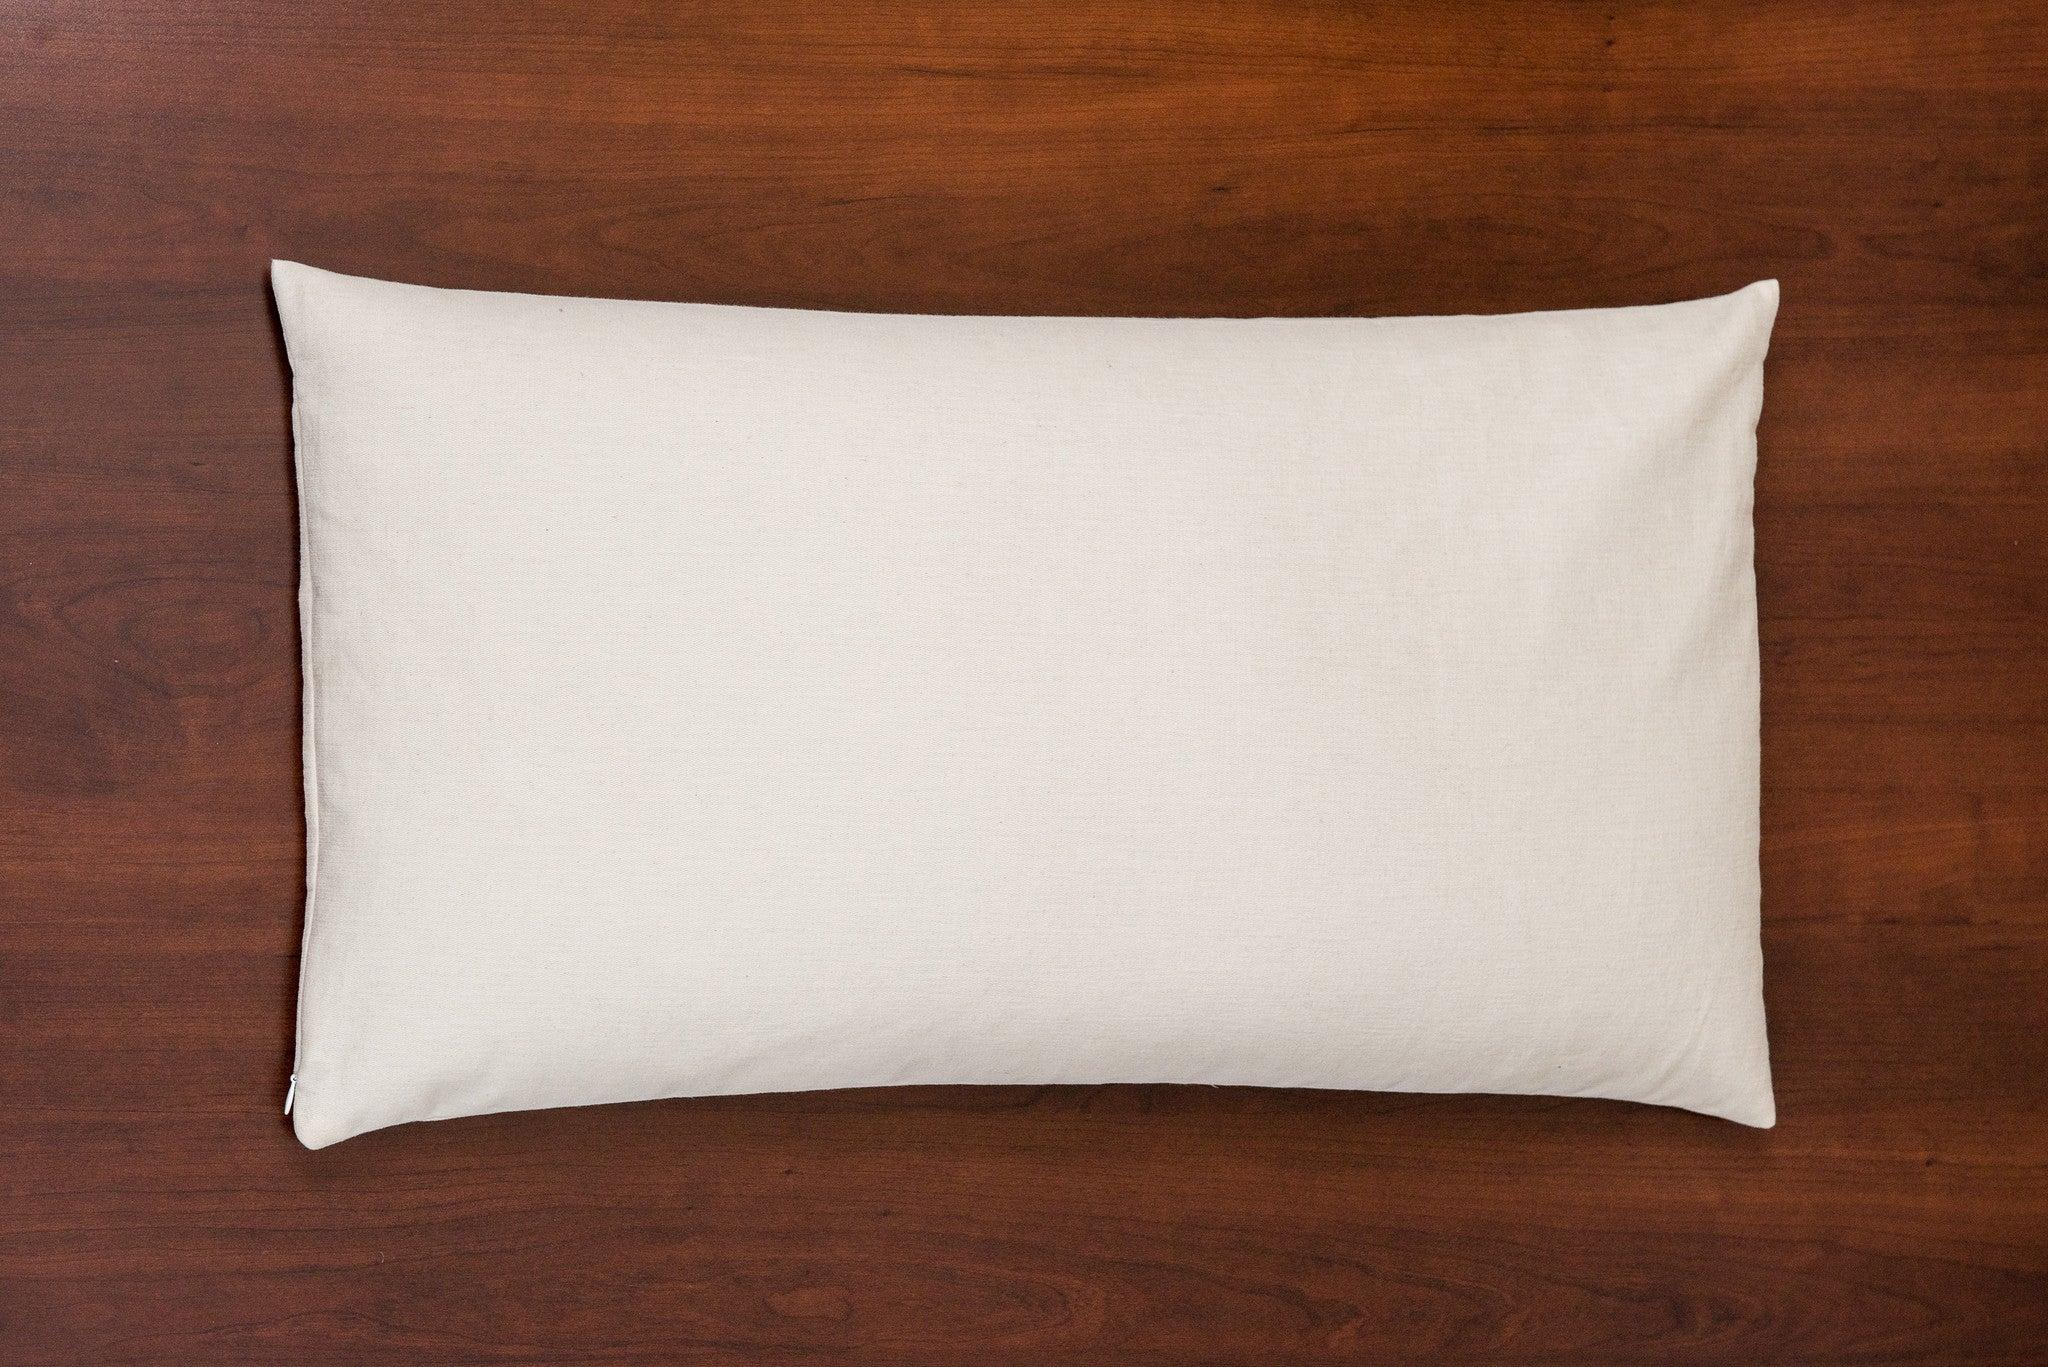 ComfySleep Organic Buckwheat Hull Pillow